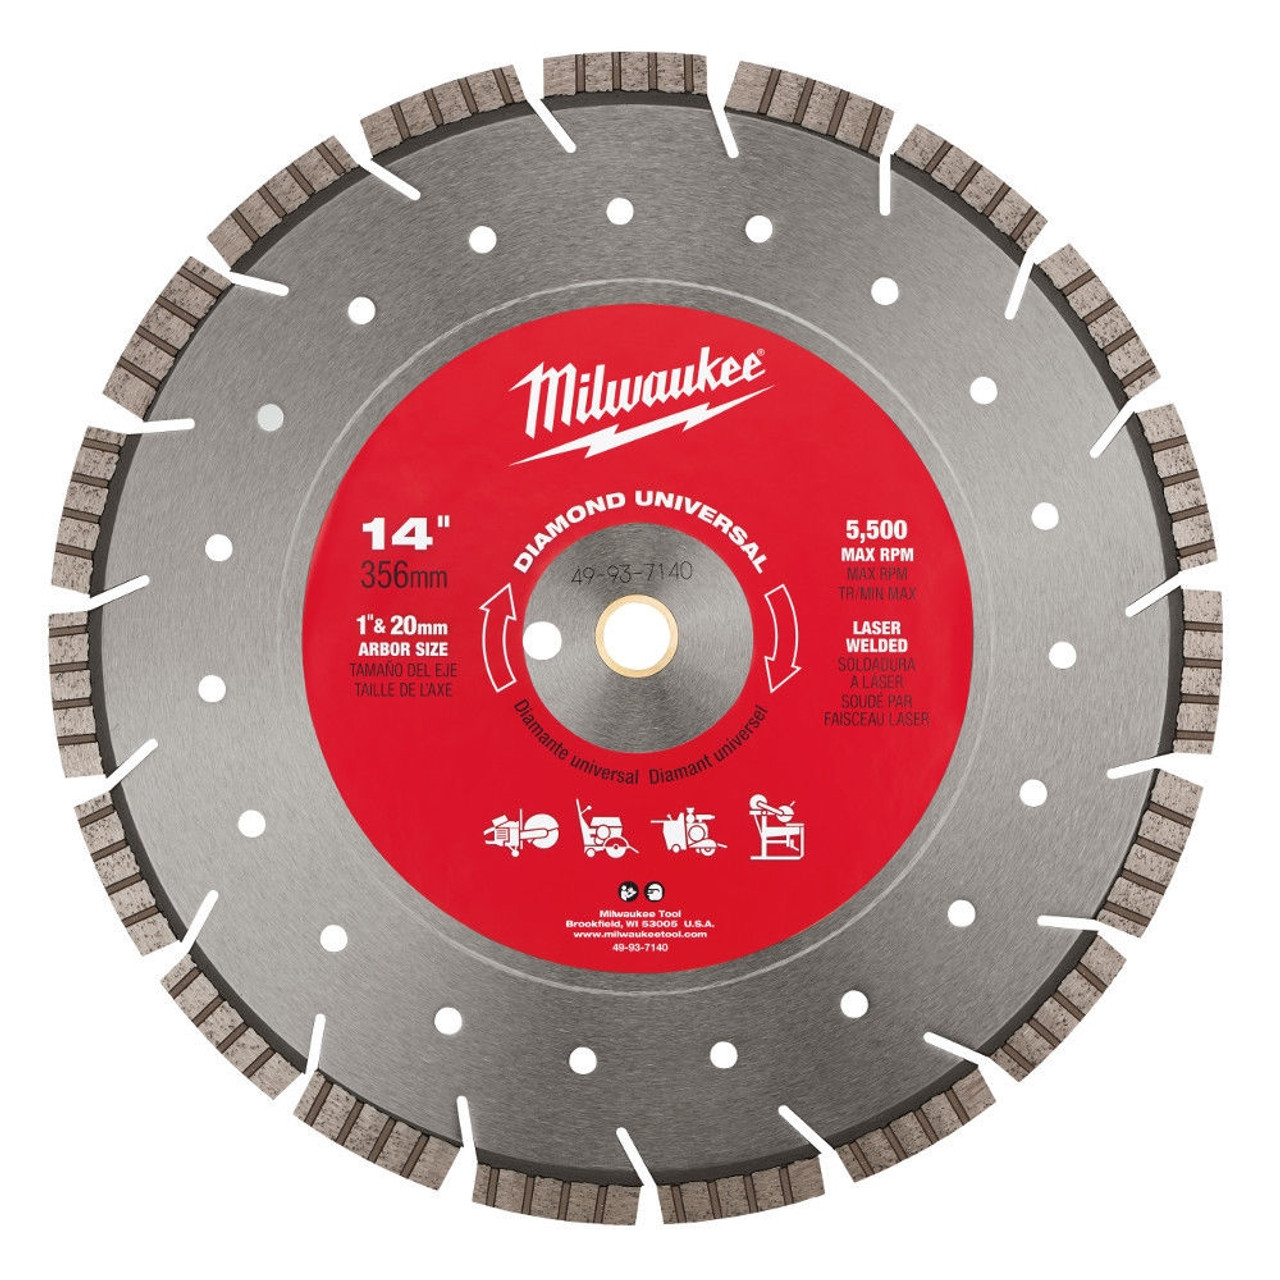 Milwaukee 49-93-7140 14 in Diamond Universal Segmented-Turbo Saw Blade